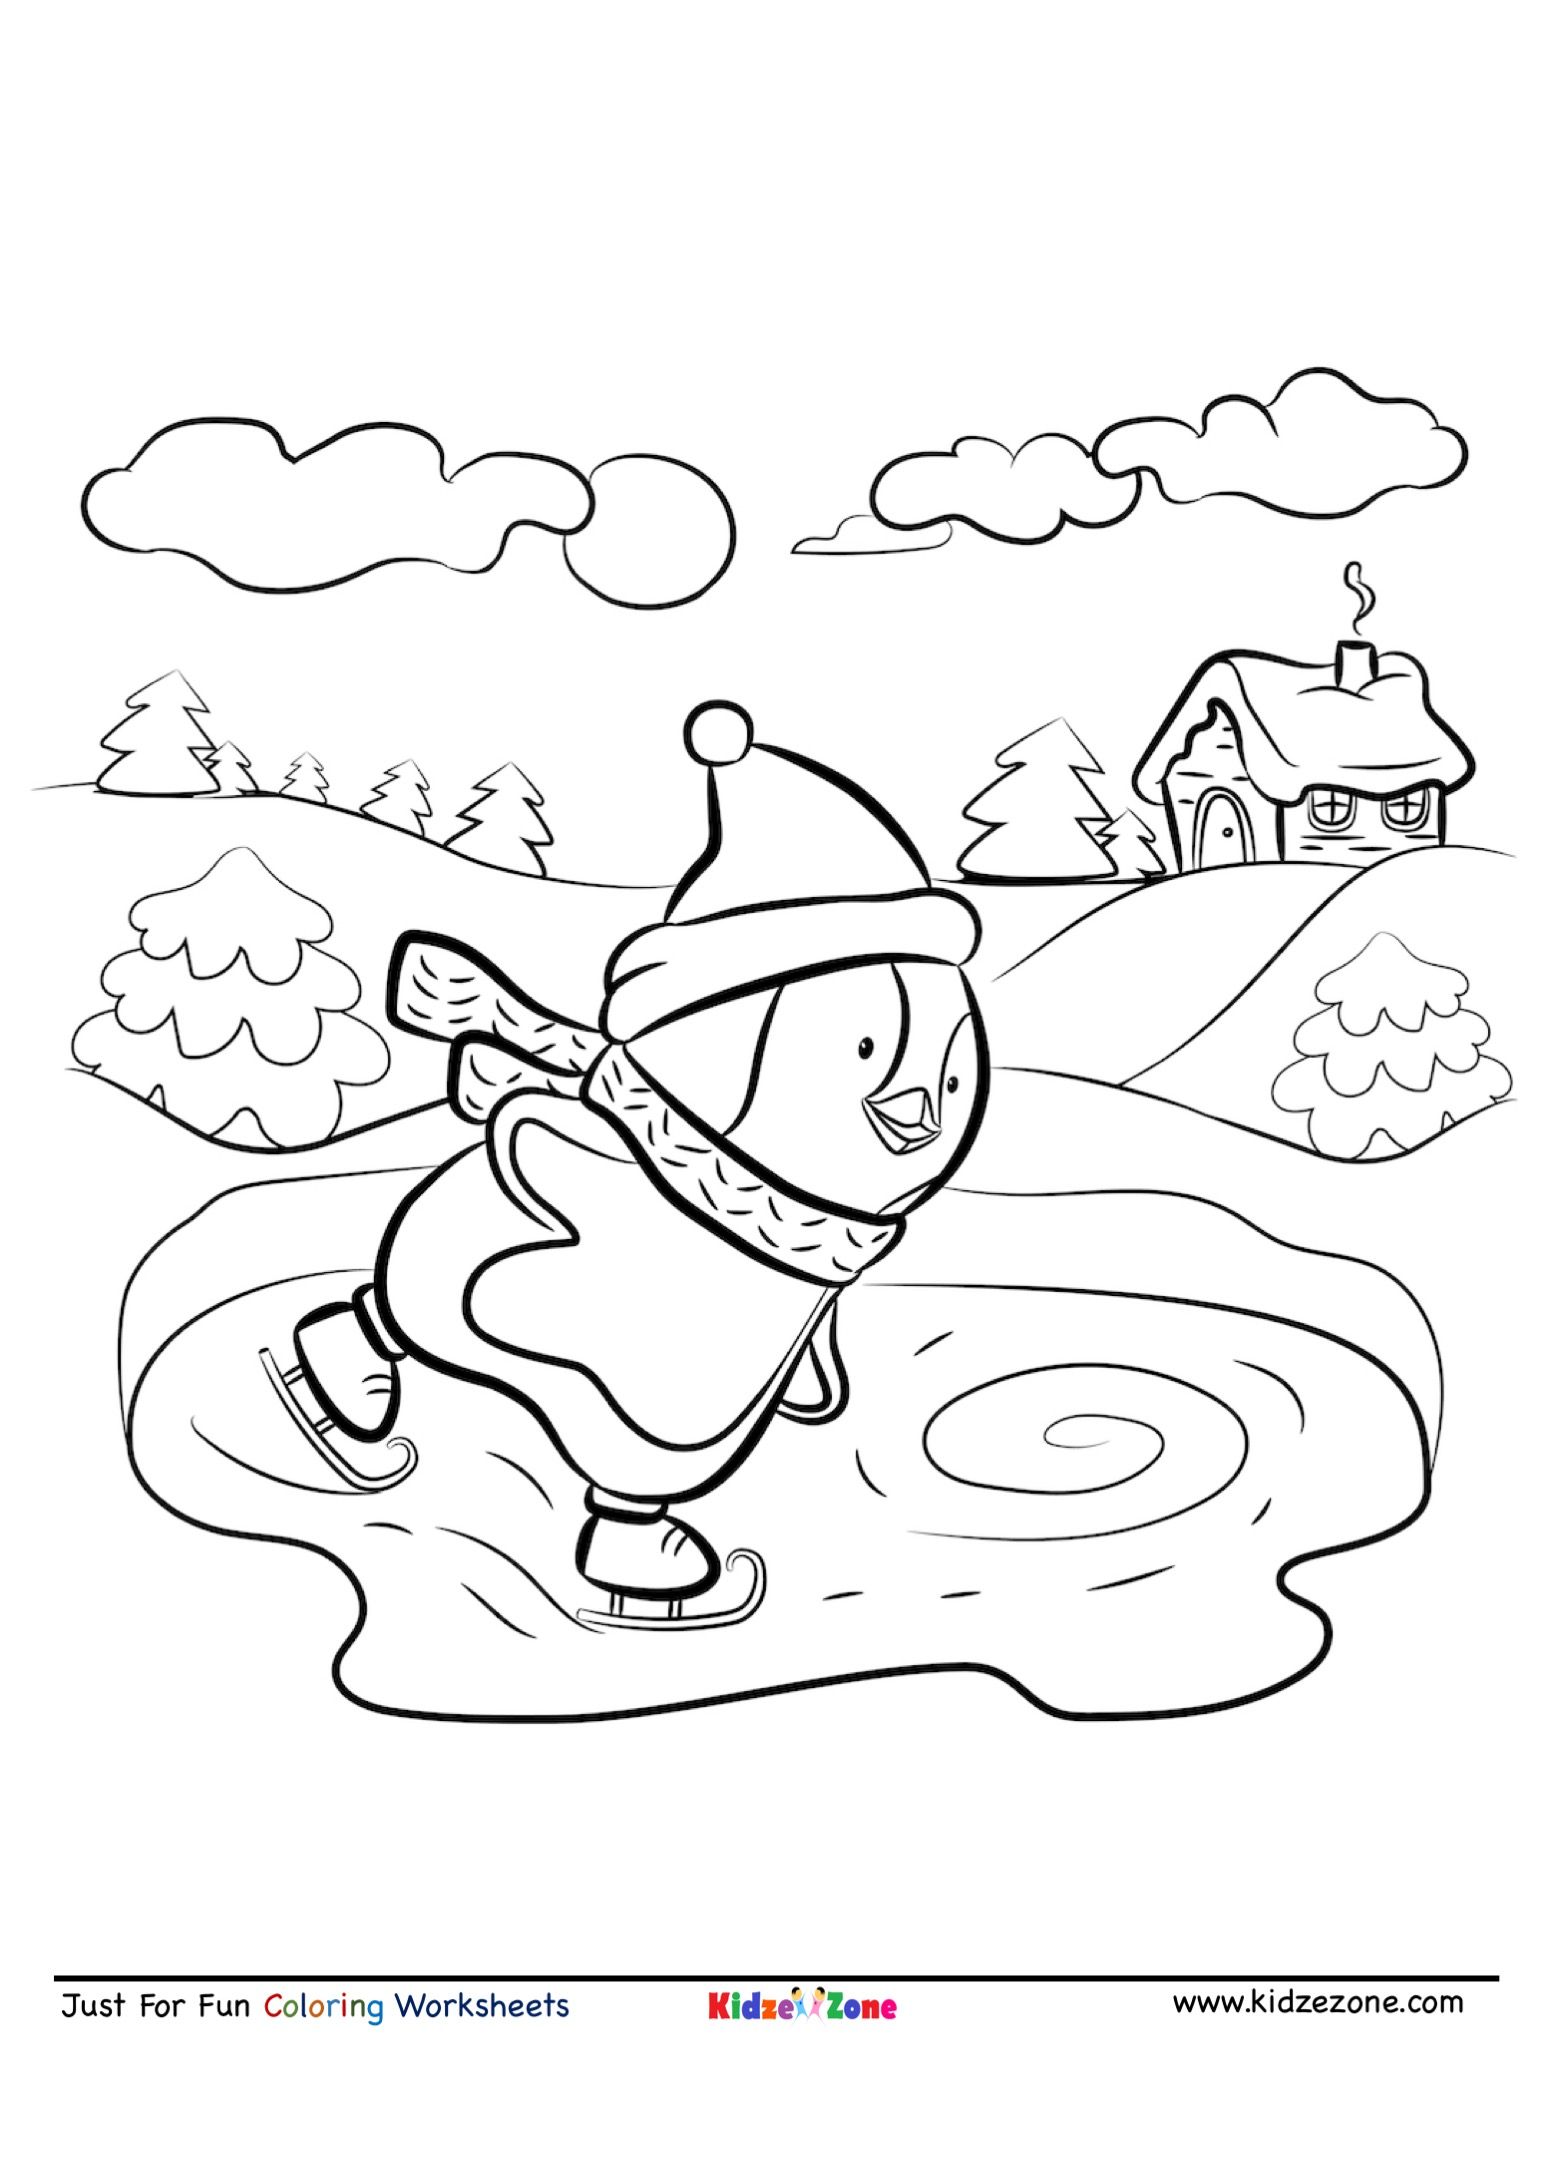 Ice Skates Coloring Pages : skates, coloring, pages, Skating, Penguin, Coloring, KidzeZone